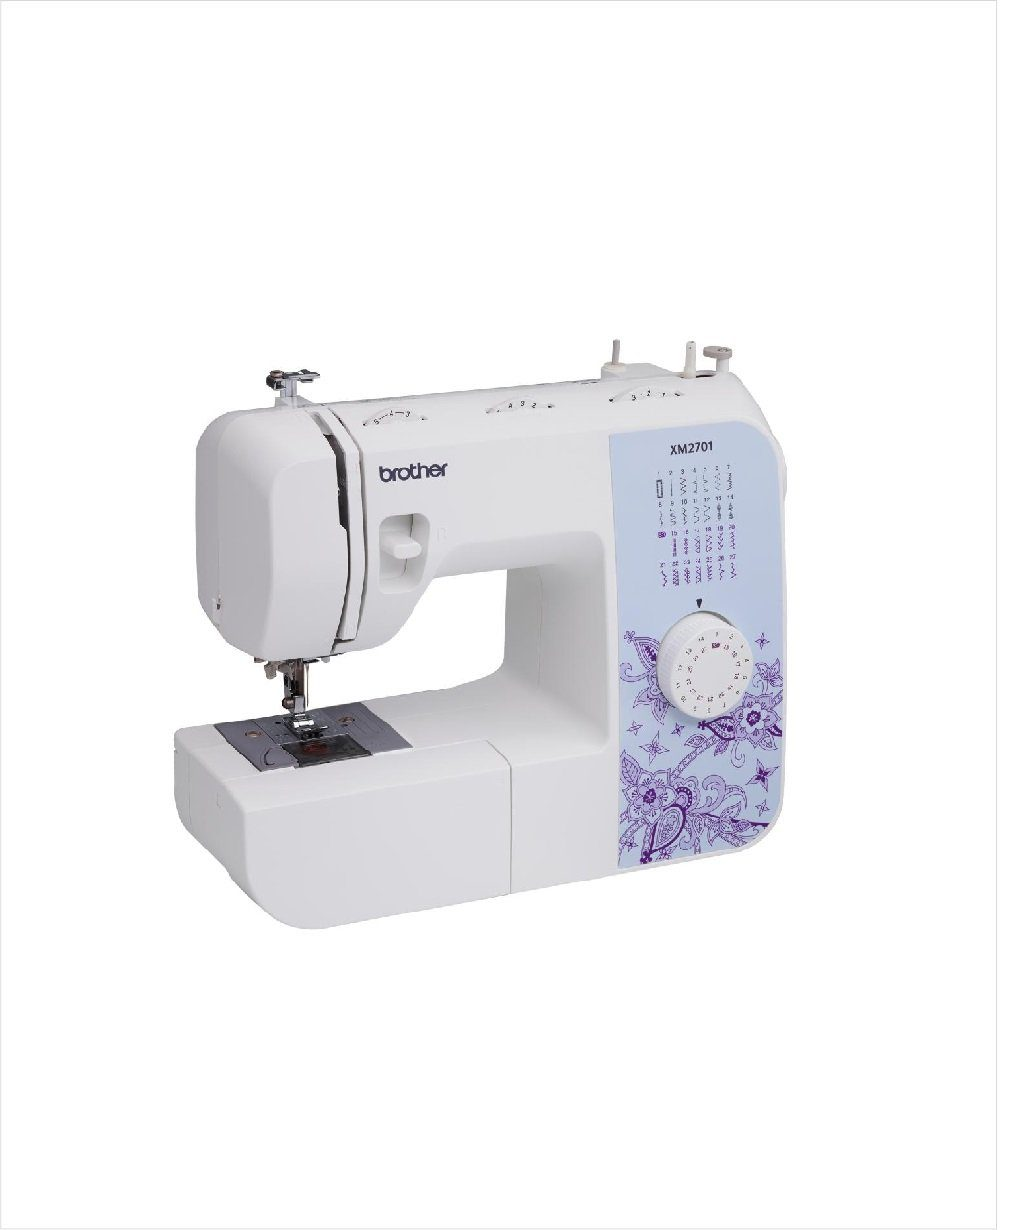 Top 4 Beginner Sewing Machines You Will LOVE - Simple and ...